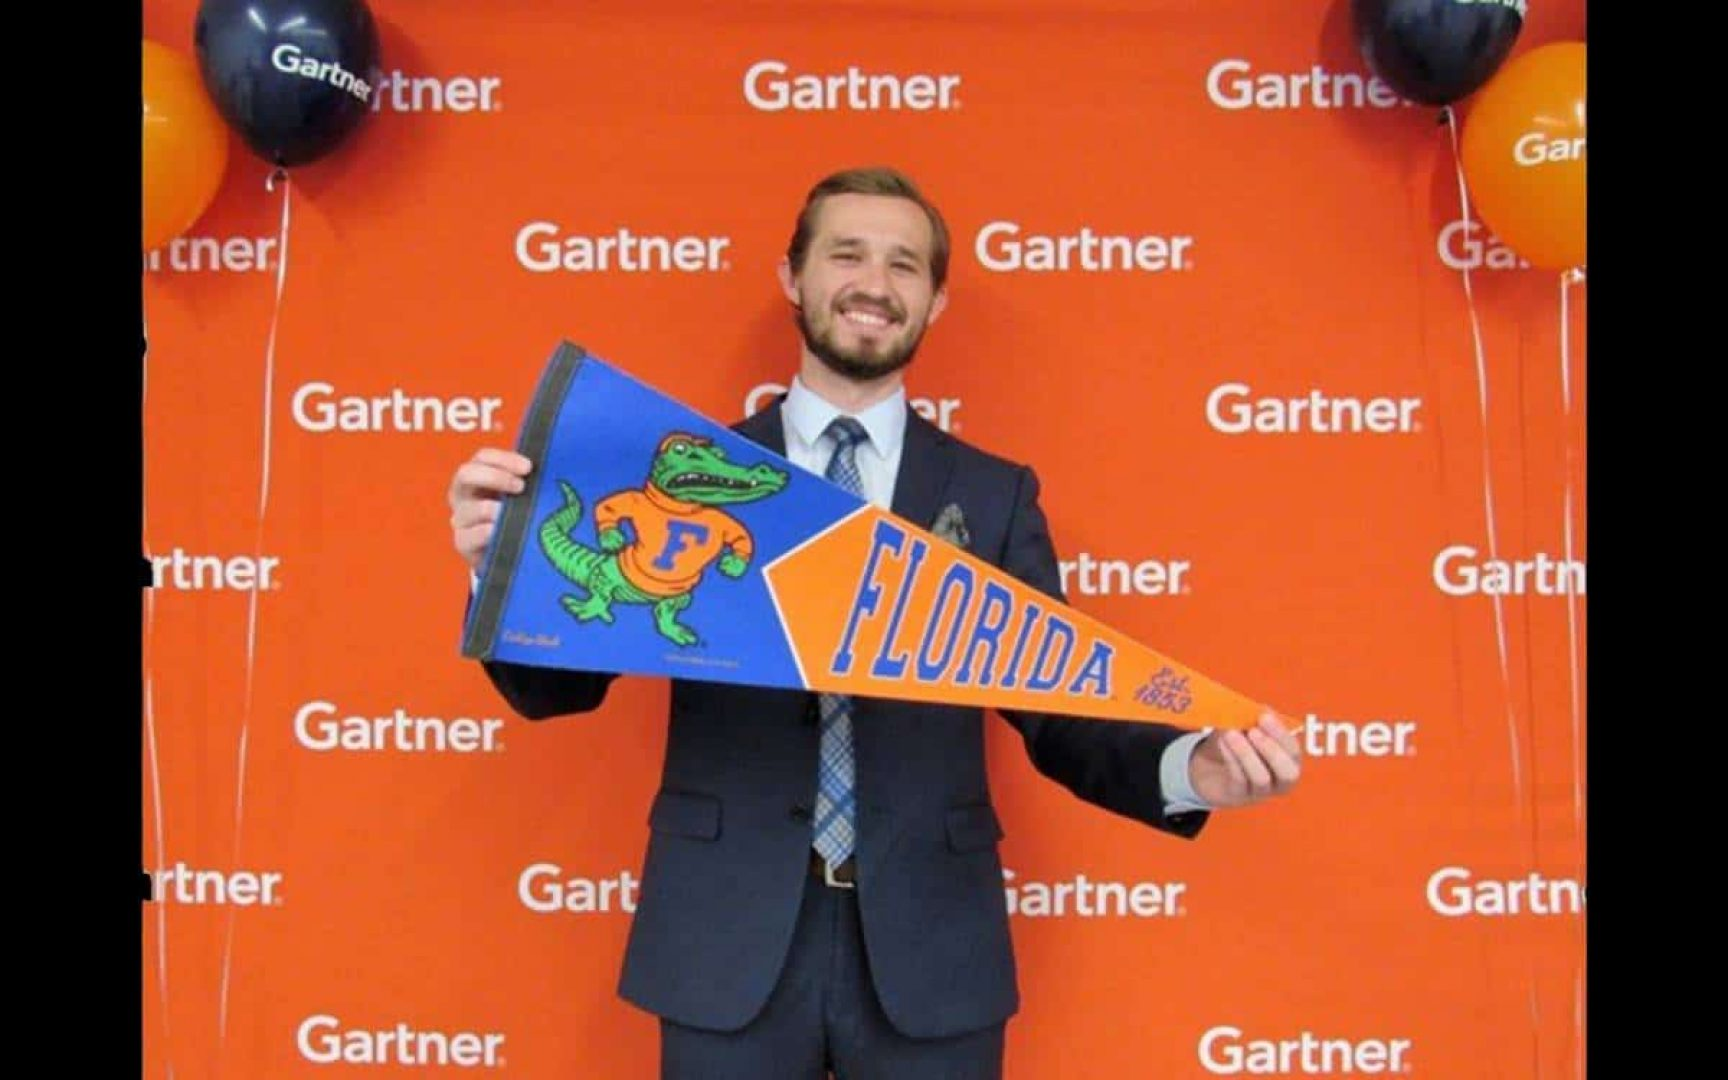 David Ousley holds a University of Florida pennant in front of a Gartner step and repeat